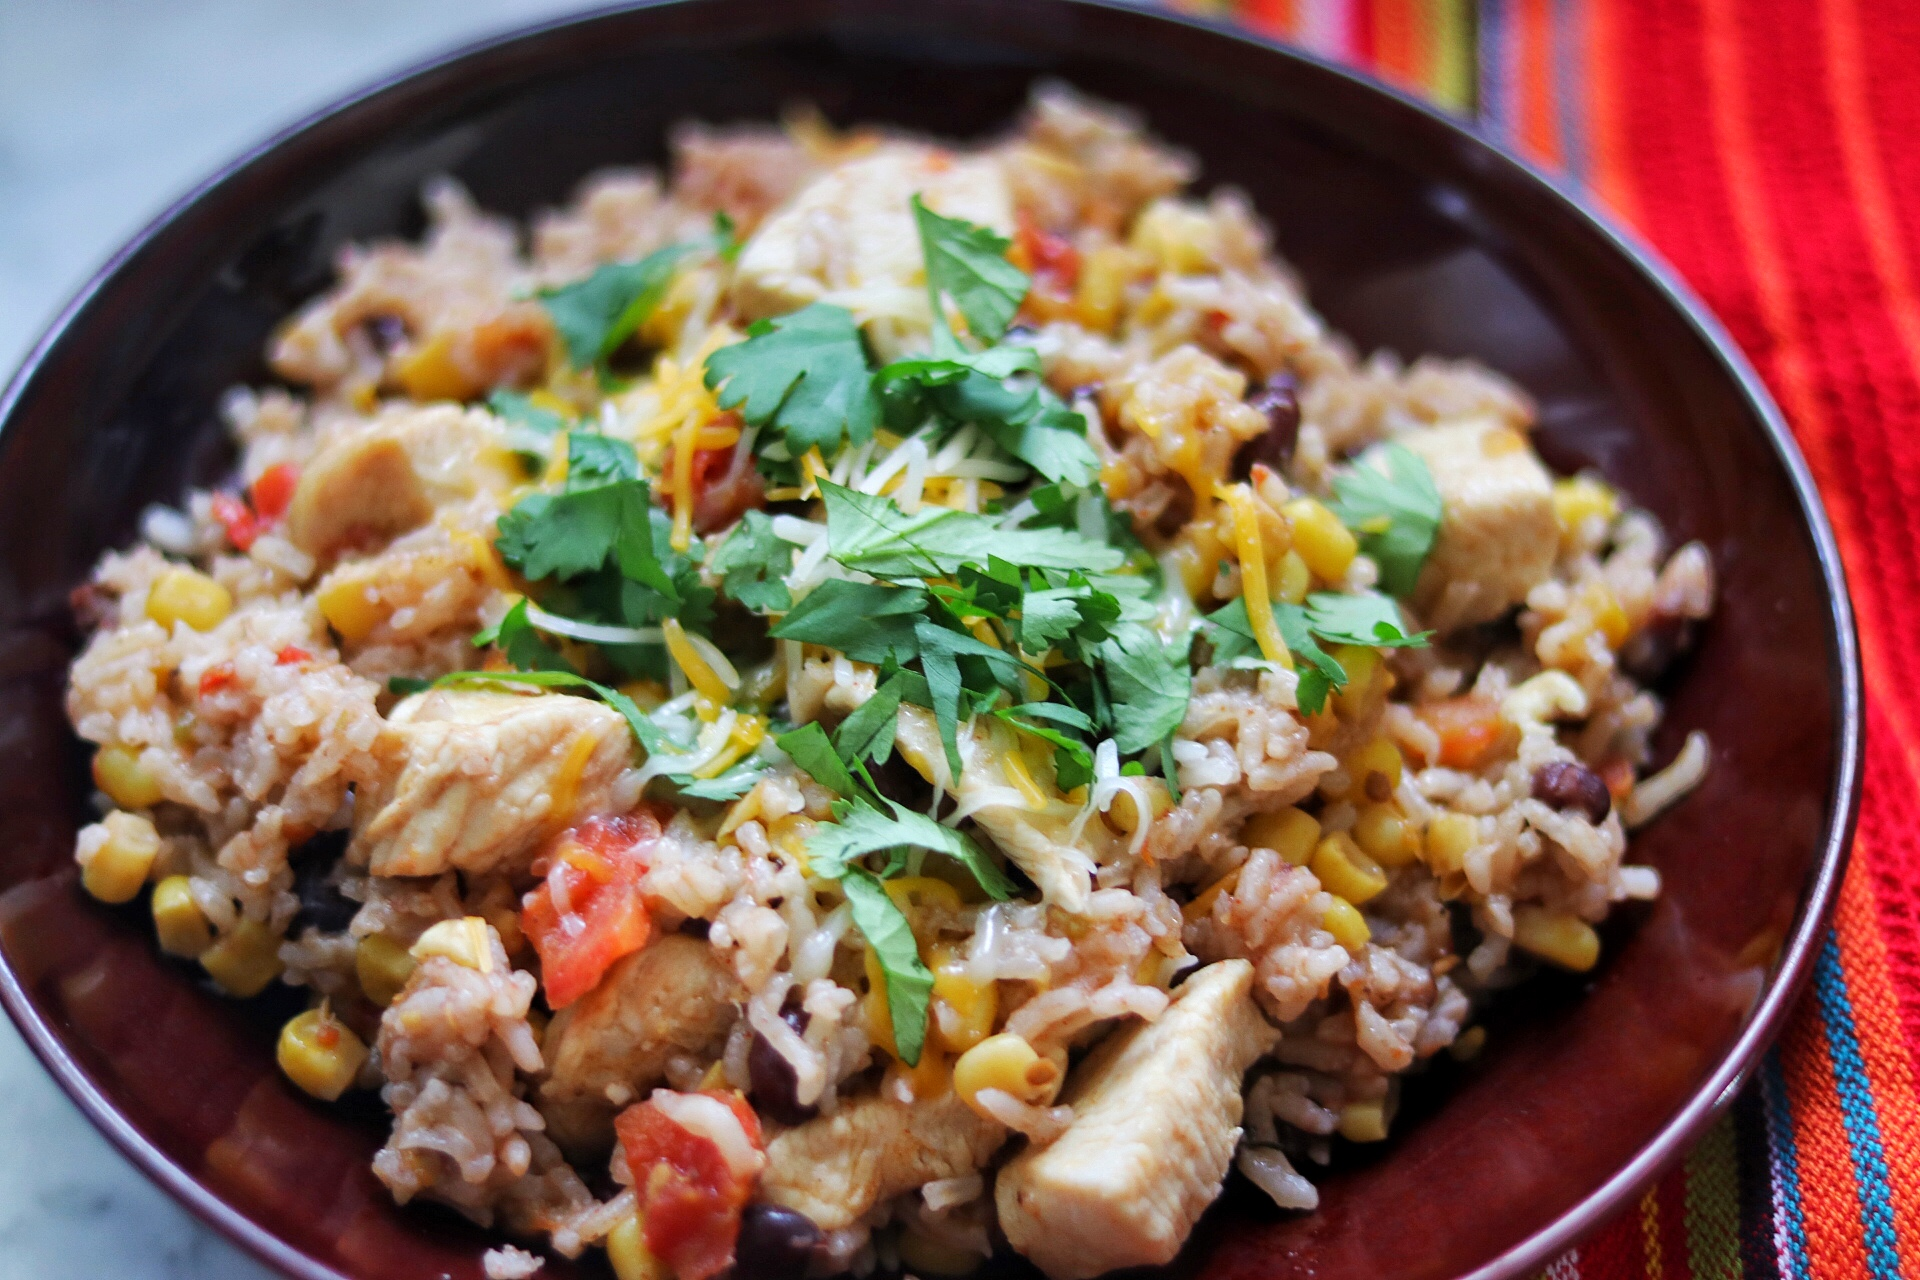 """""""This easy, one-pot, Mexican chicken and rice dinner is done in about 30 minutes,"""" says fabeveryday. """"Serve with other toppings like avocado and sour cream, if desired."""""""